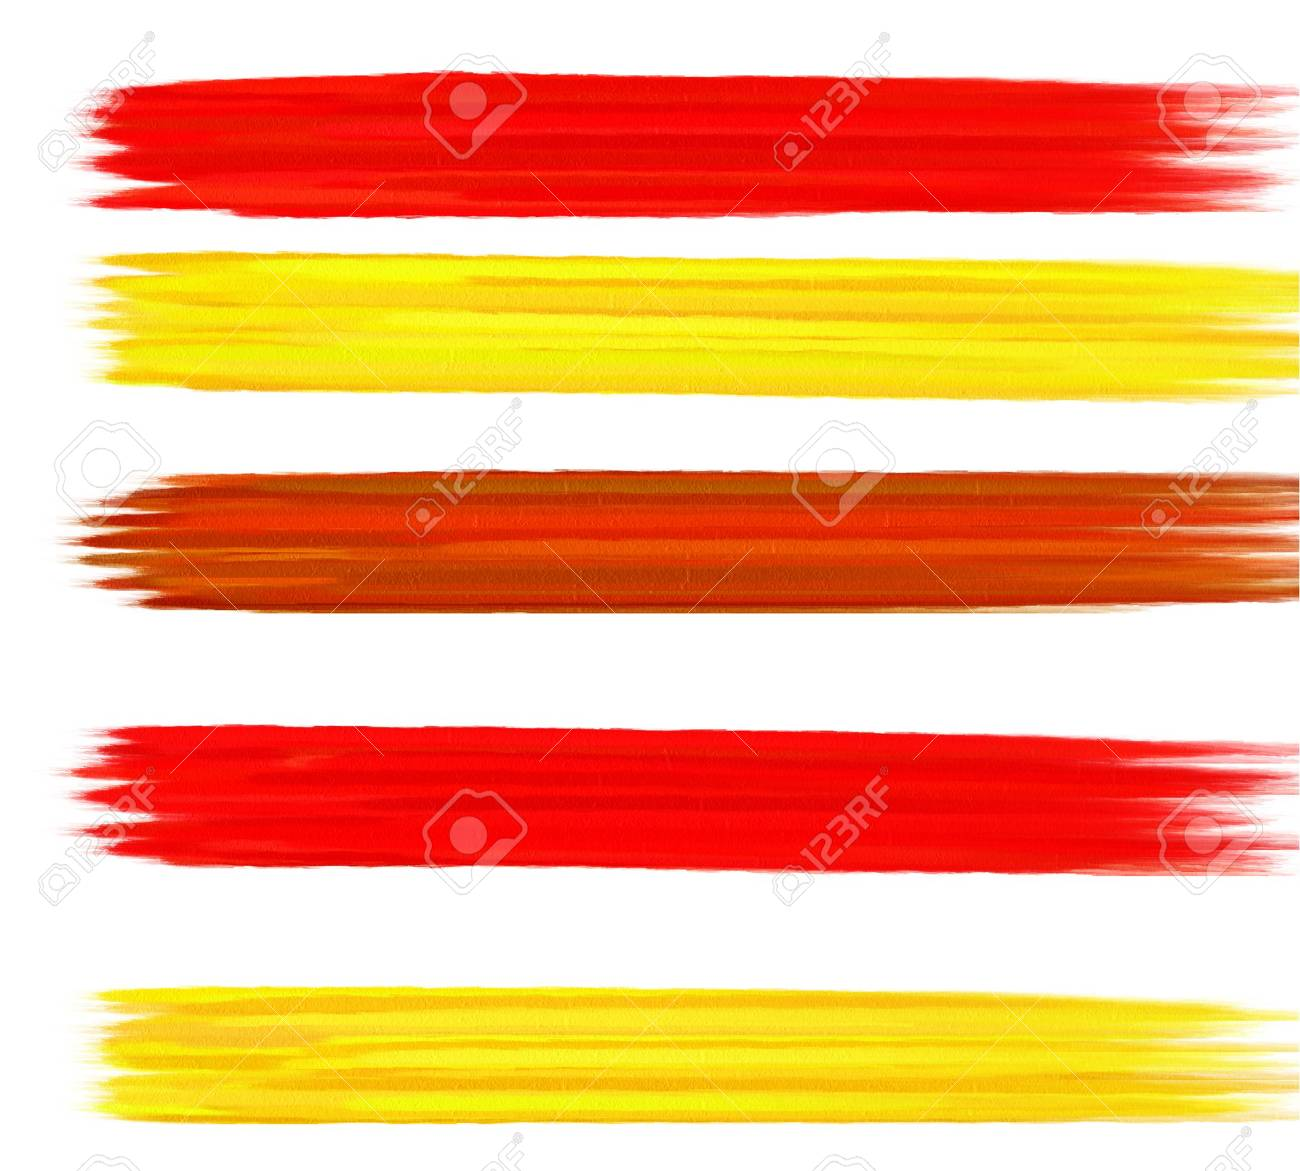 Brush strokes banners Stock Photo - 17496903